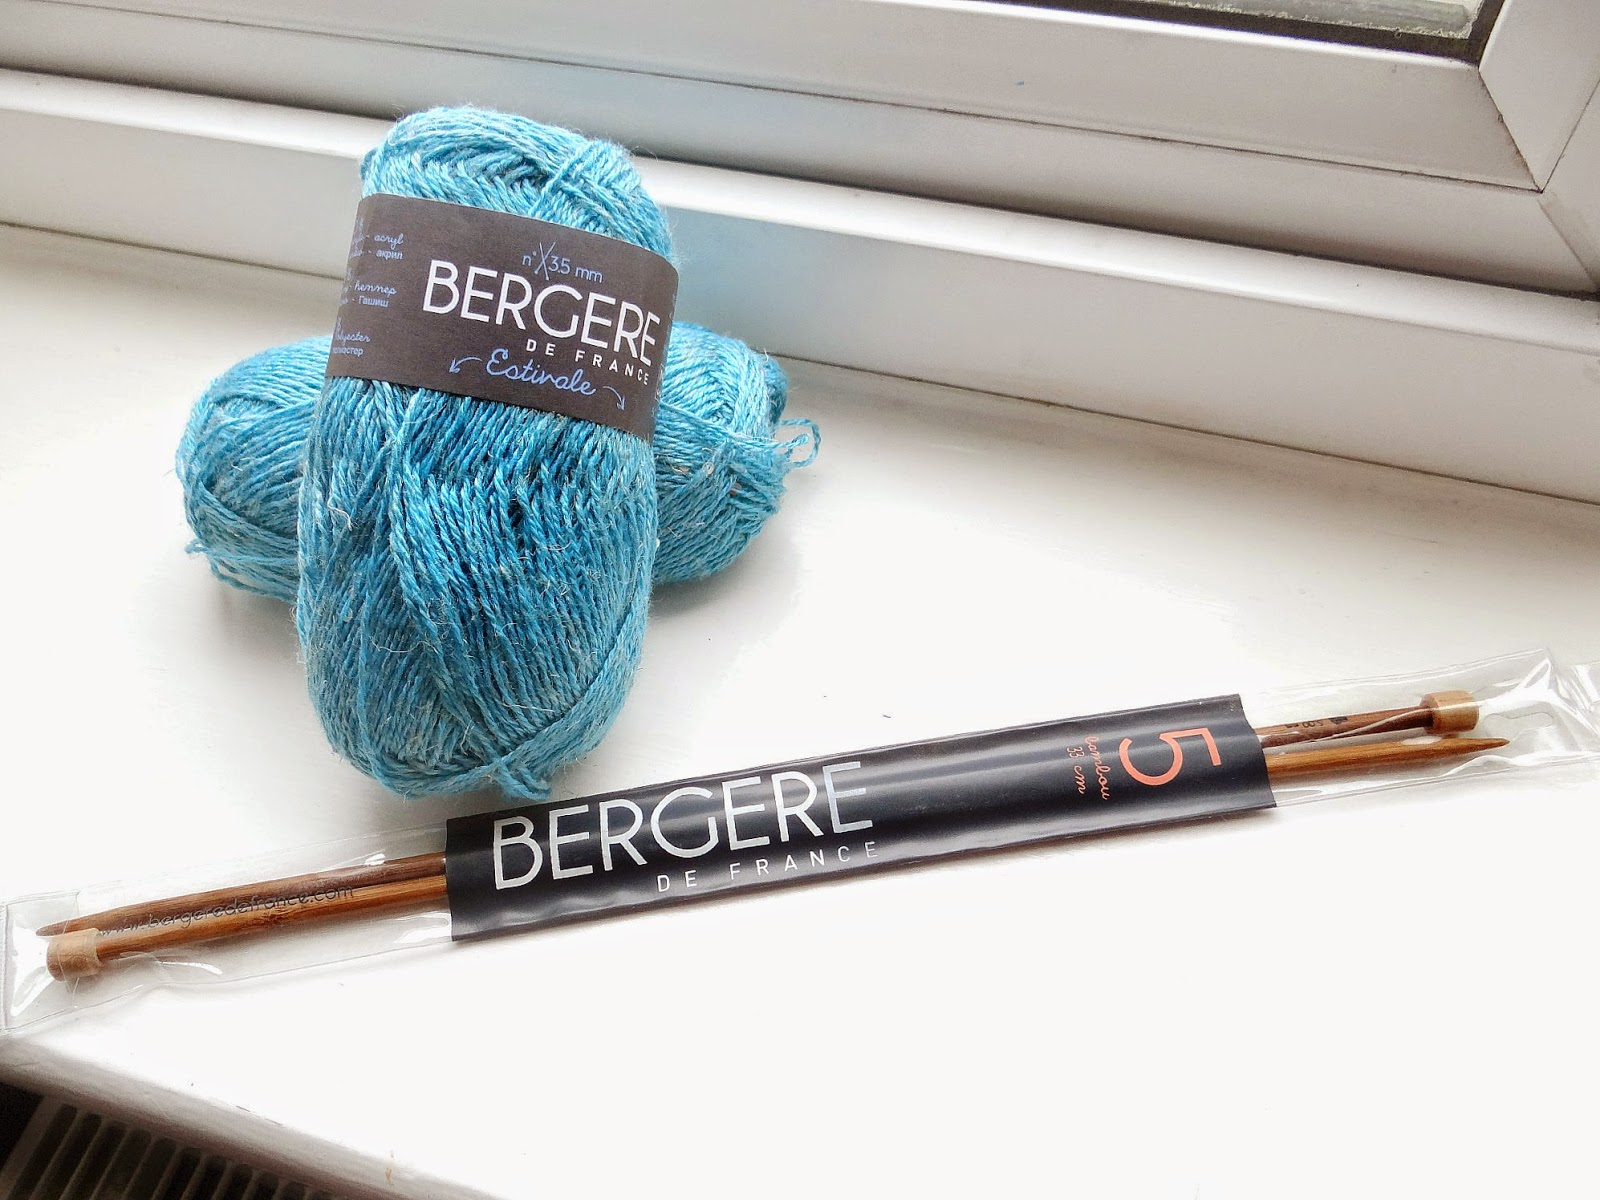 knitting, lace stitch or faggoting, Bergere De France Estivale in Turquoise